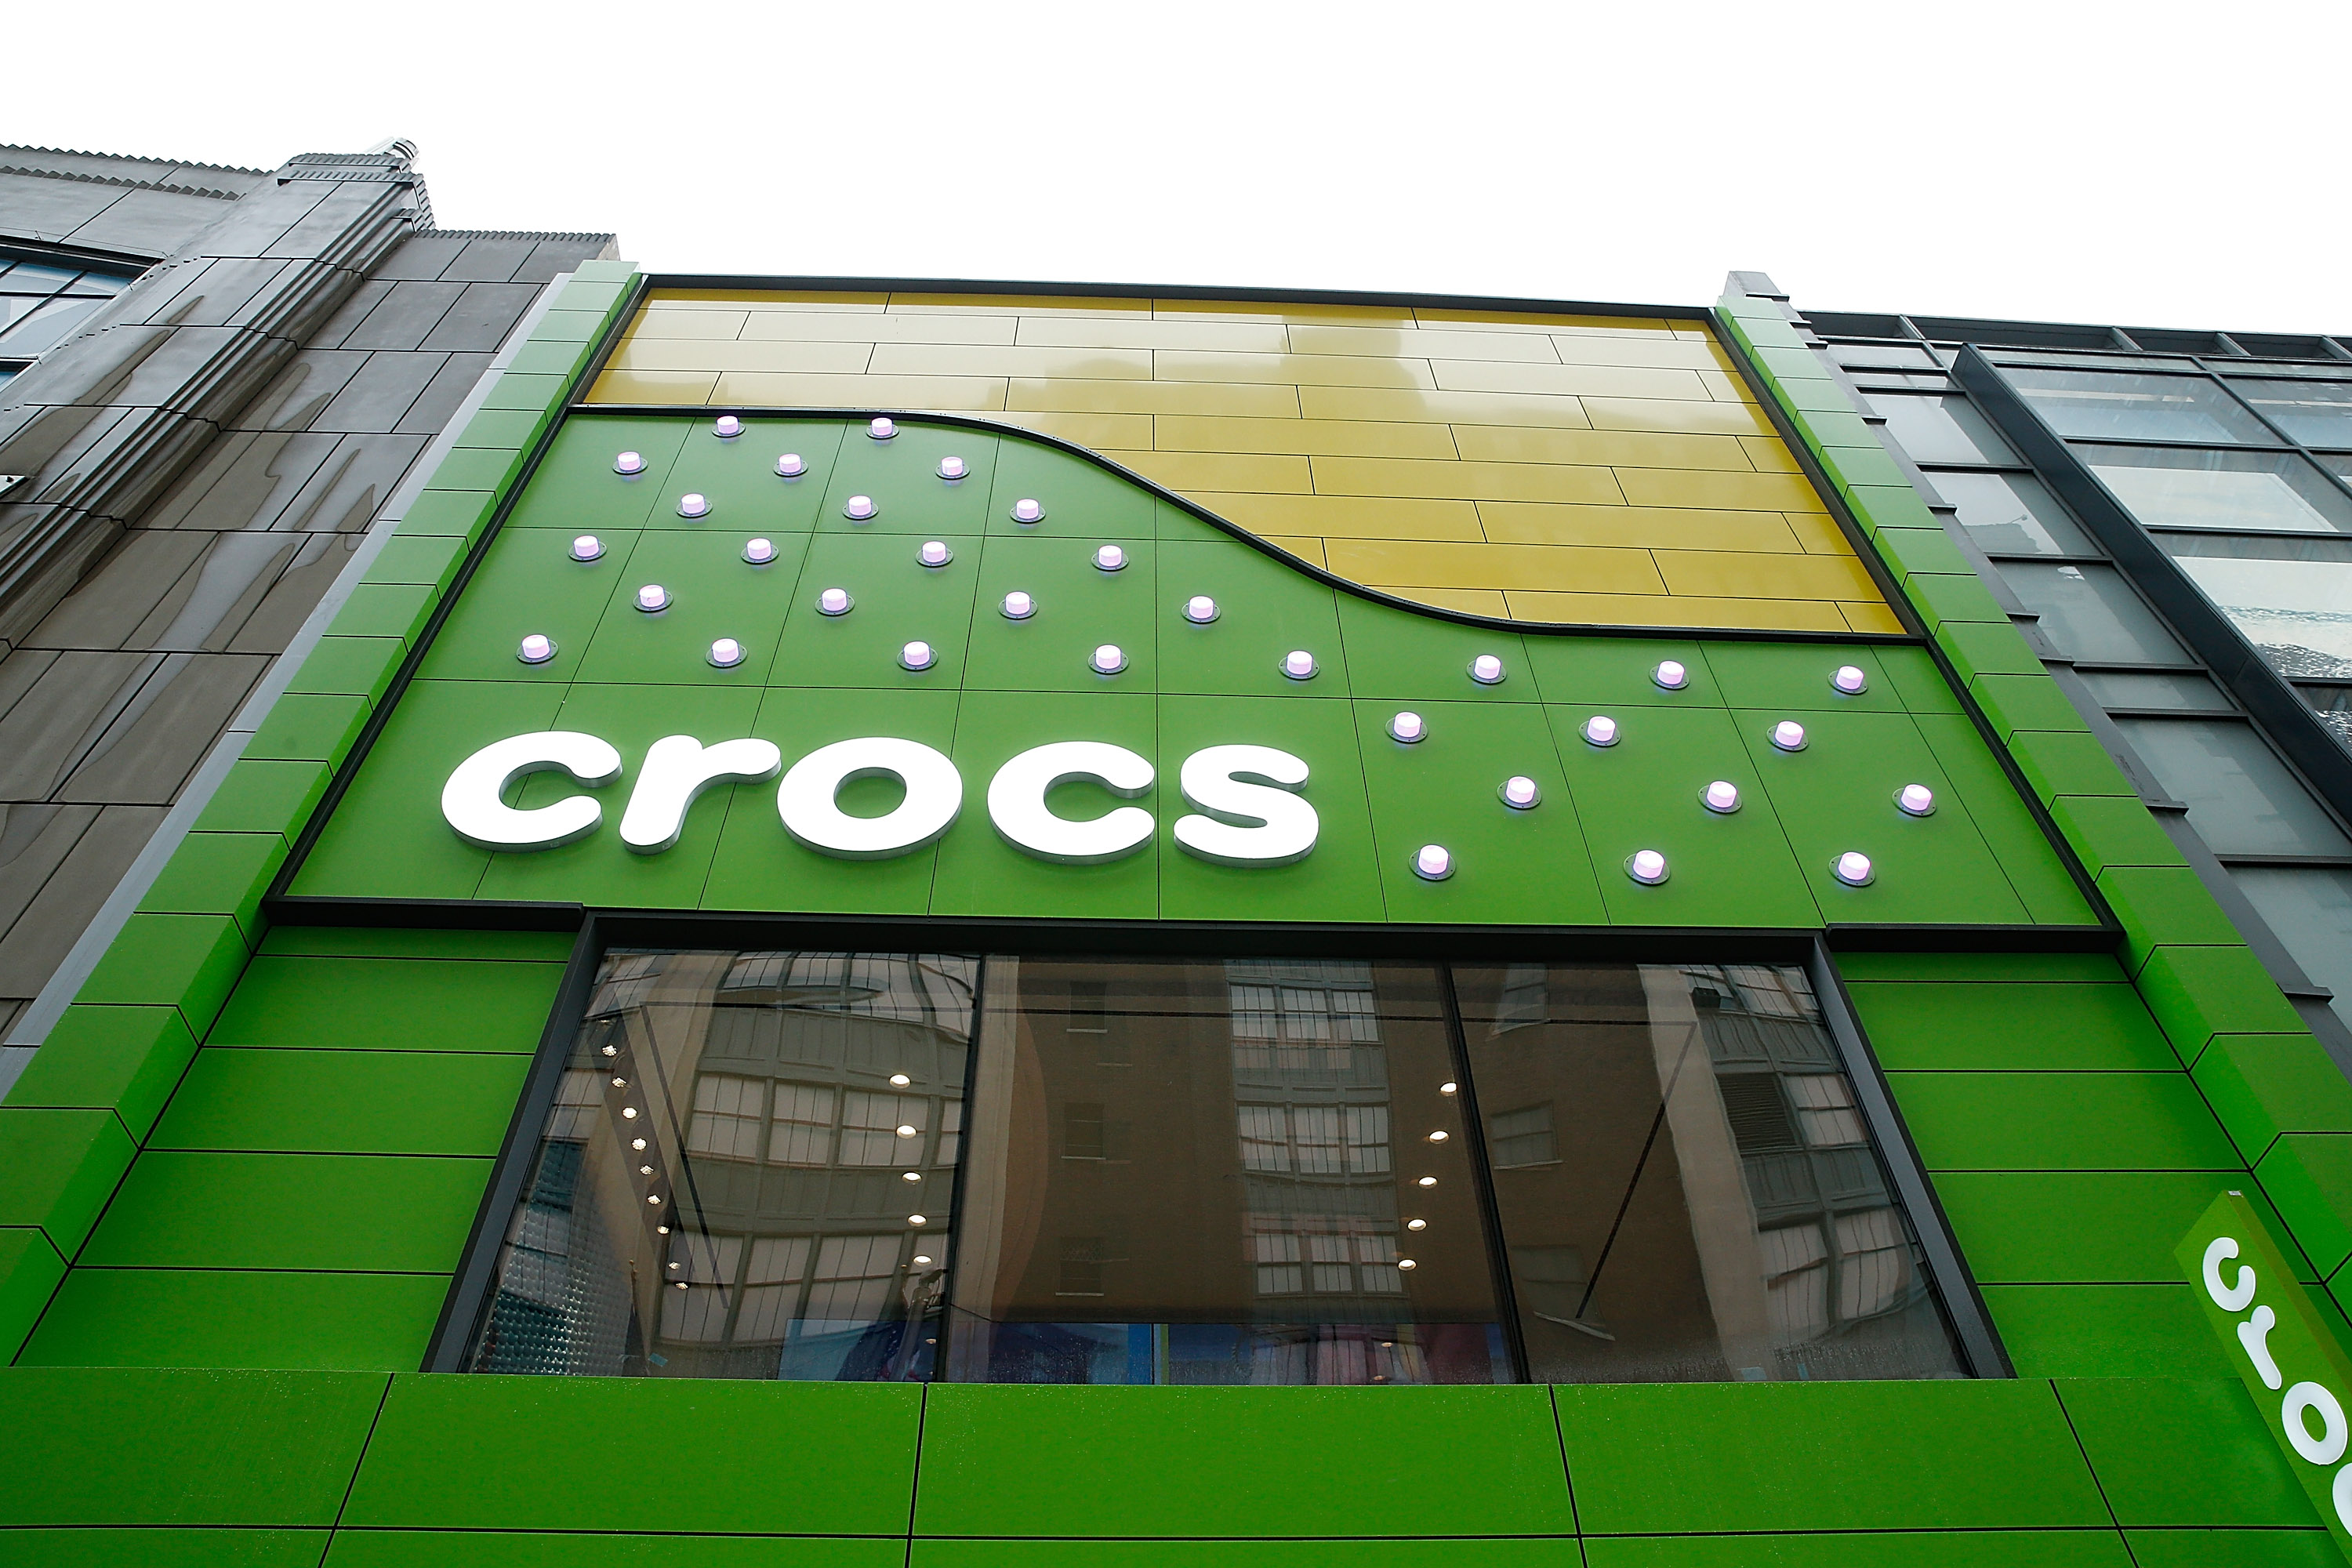 Crocs in New York, New York: complete list of store locations, hours, holiday hours, phone numbers, and services. Find Crocs location near you. Crocs Locations & Hours in New York, New York.